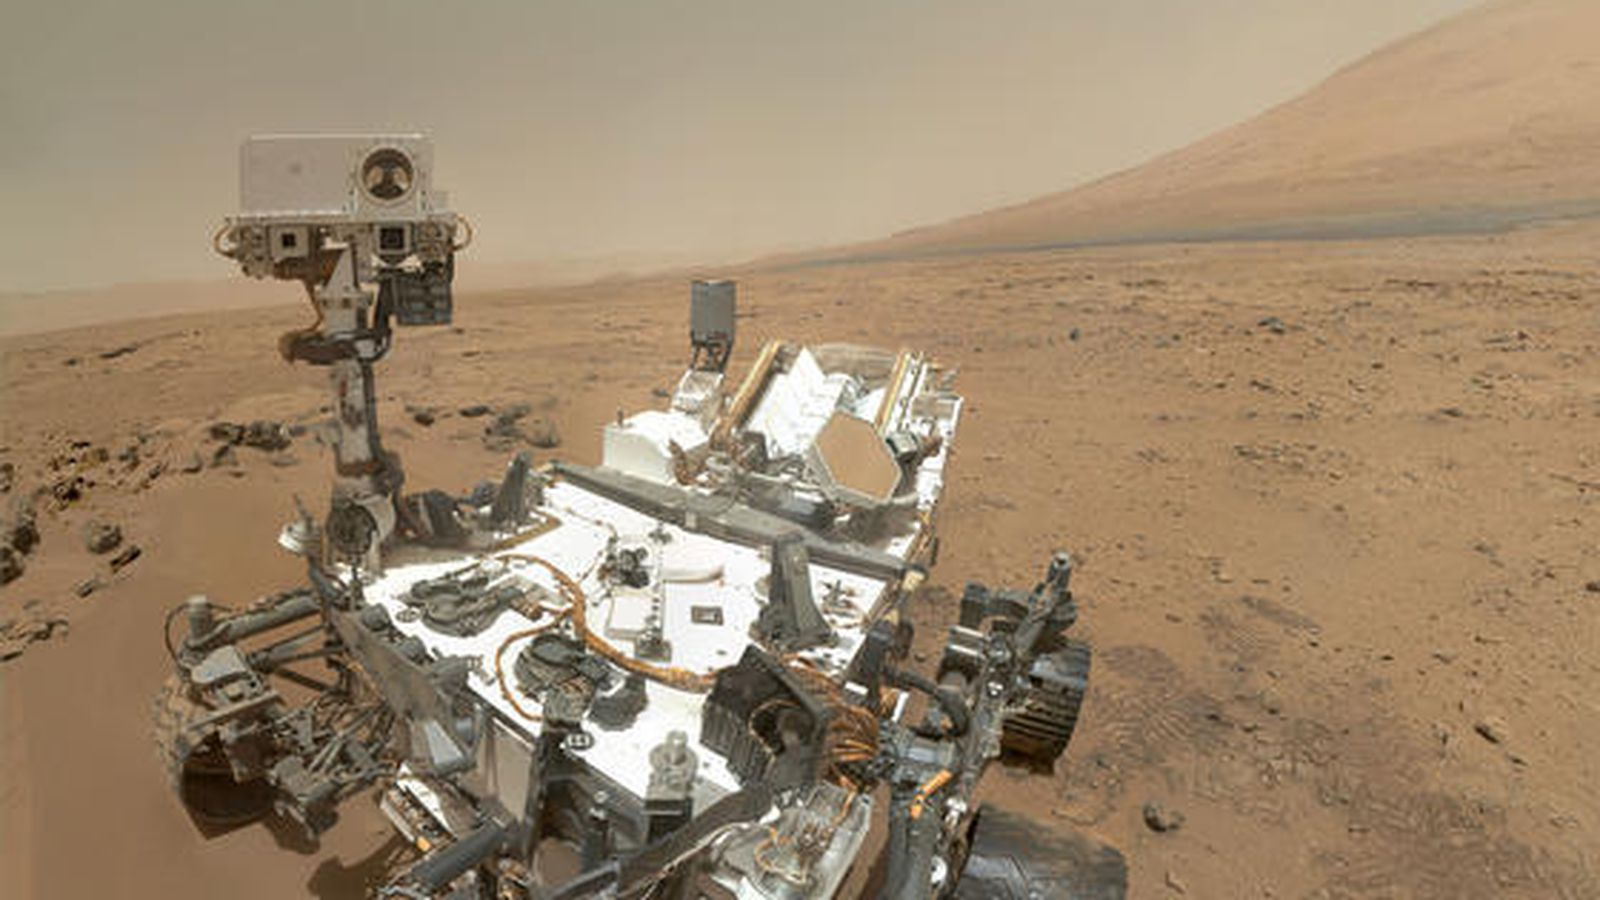 curiosity mars rover pictures - 1100×740